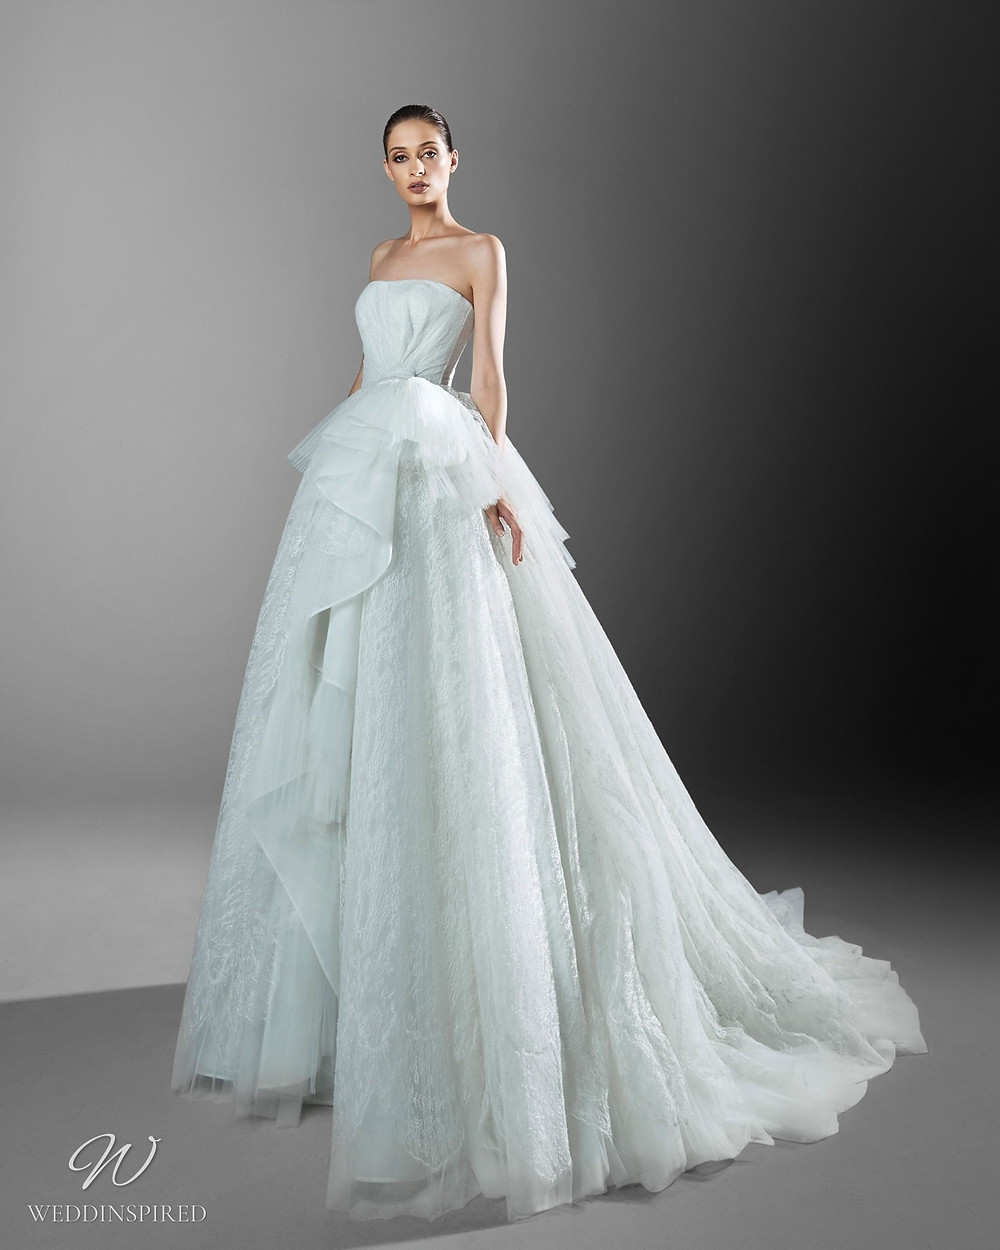 A Zuhair Murad strapless light blue princess ball gown Cinderella wedding dress with a tulle skirt